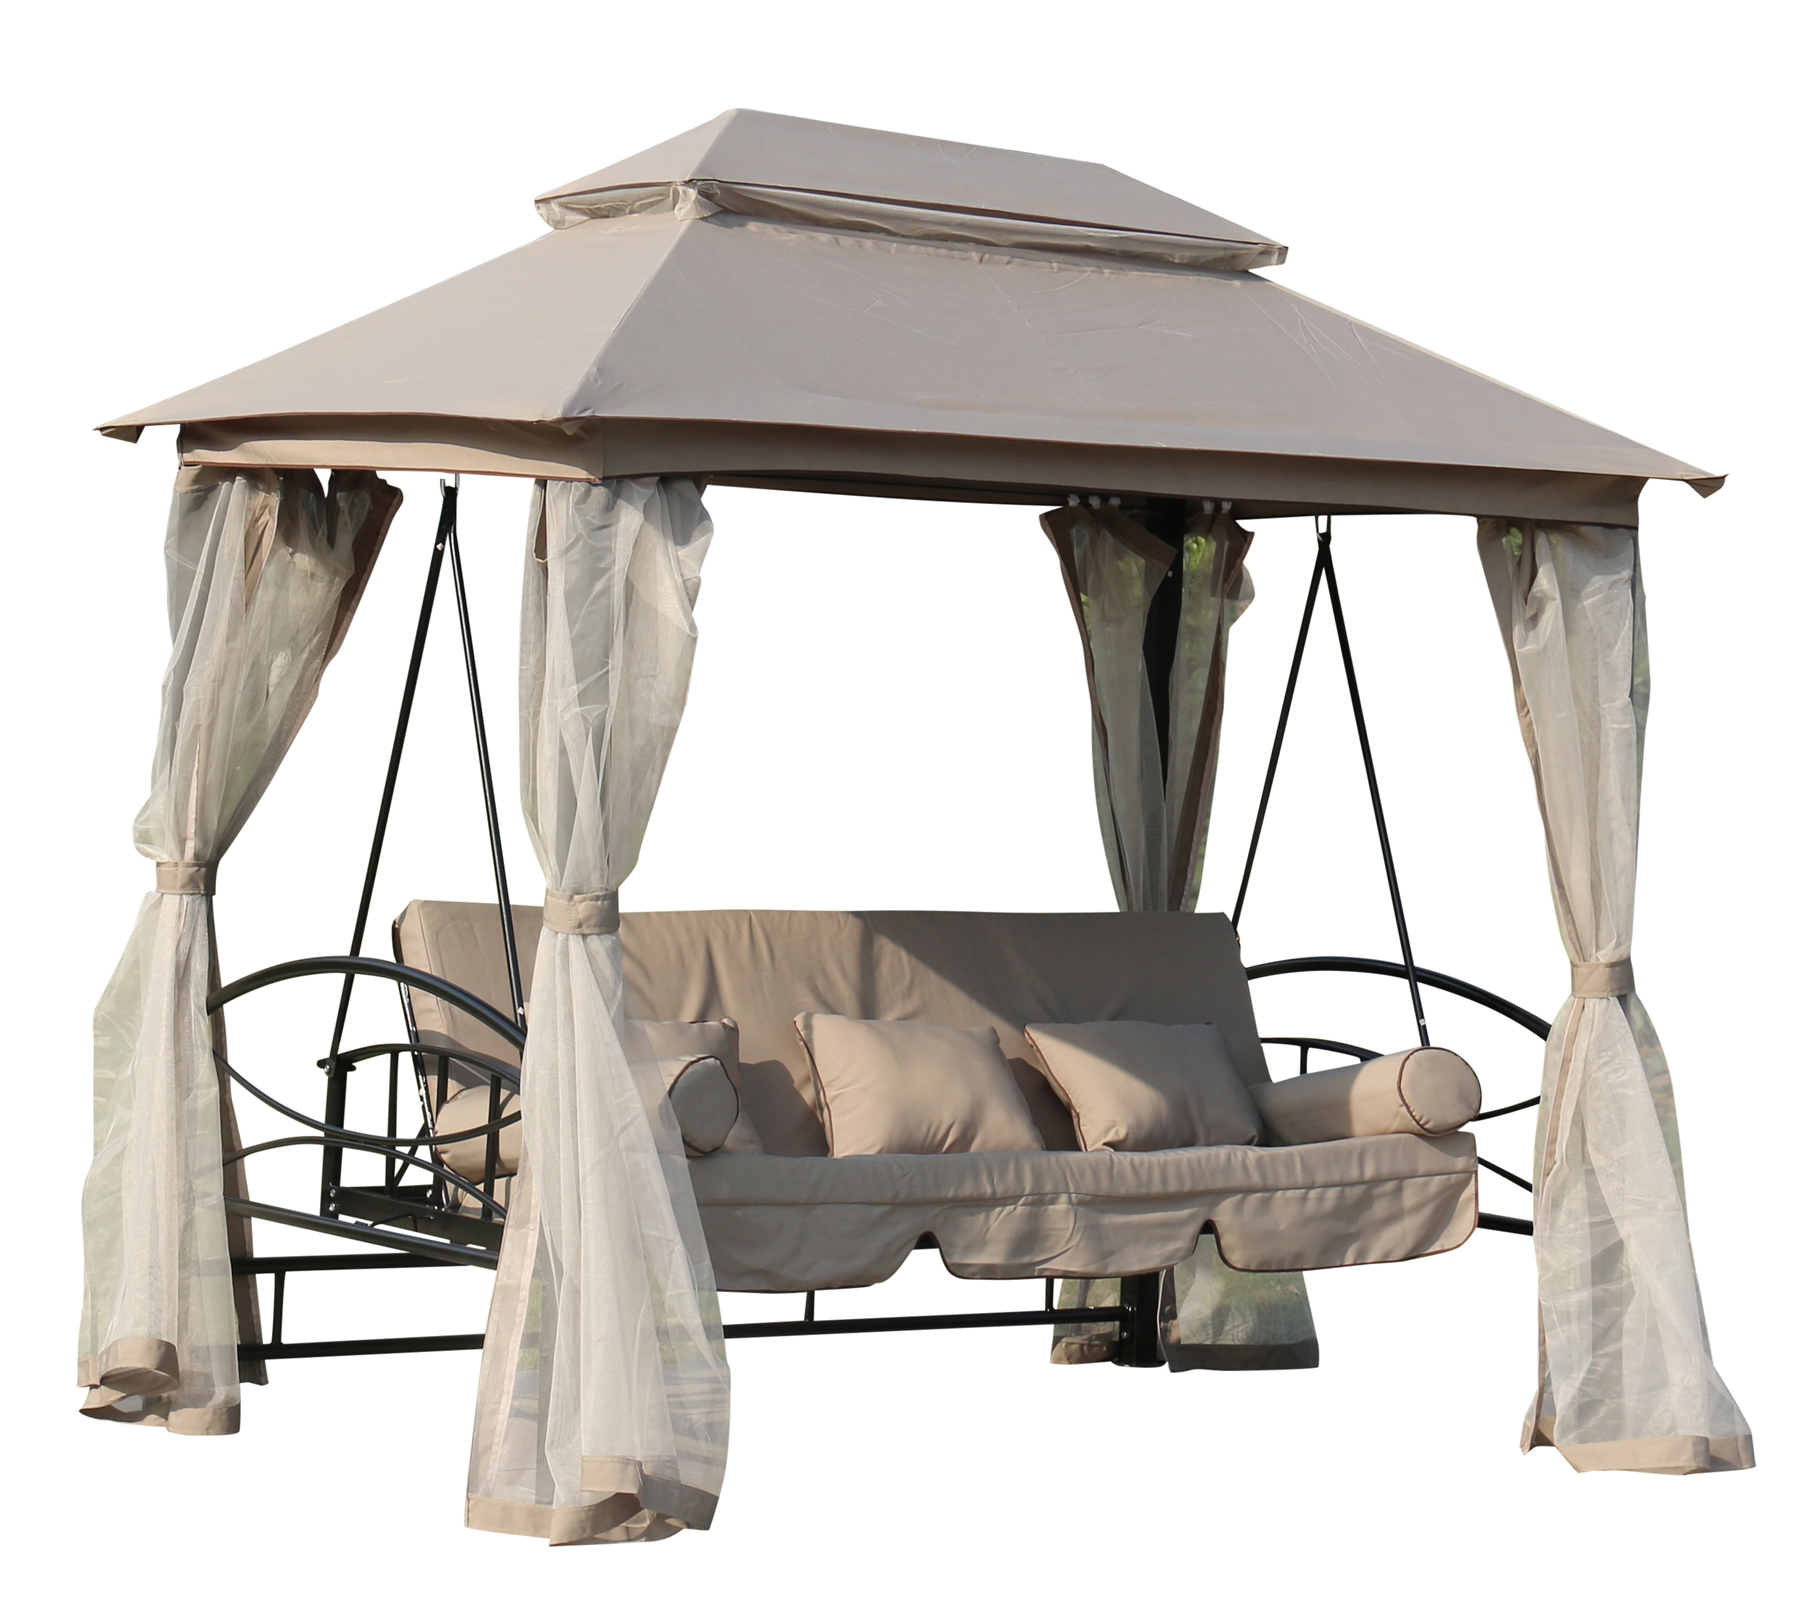 foxhunter garten swing h ngematte 3 4 sitzer stuhl tisch bett gartenlaube au en ebay. Black Bedroom Furniture Sets. Home Design Ideas